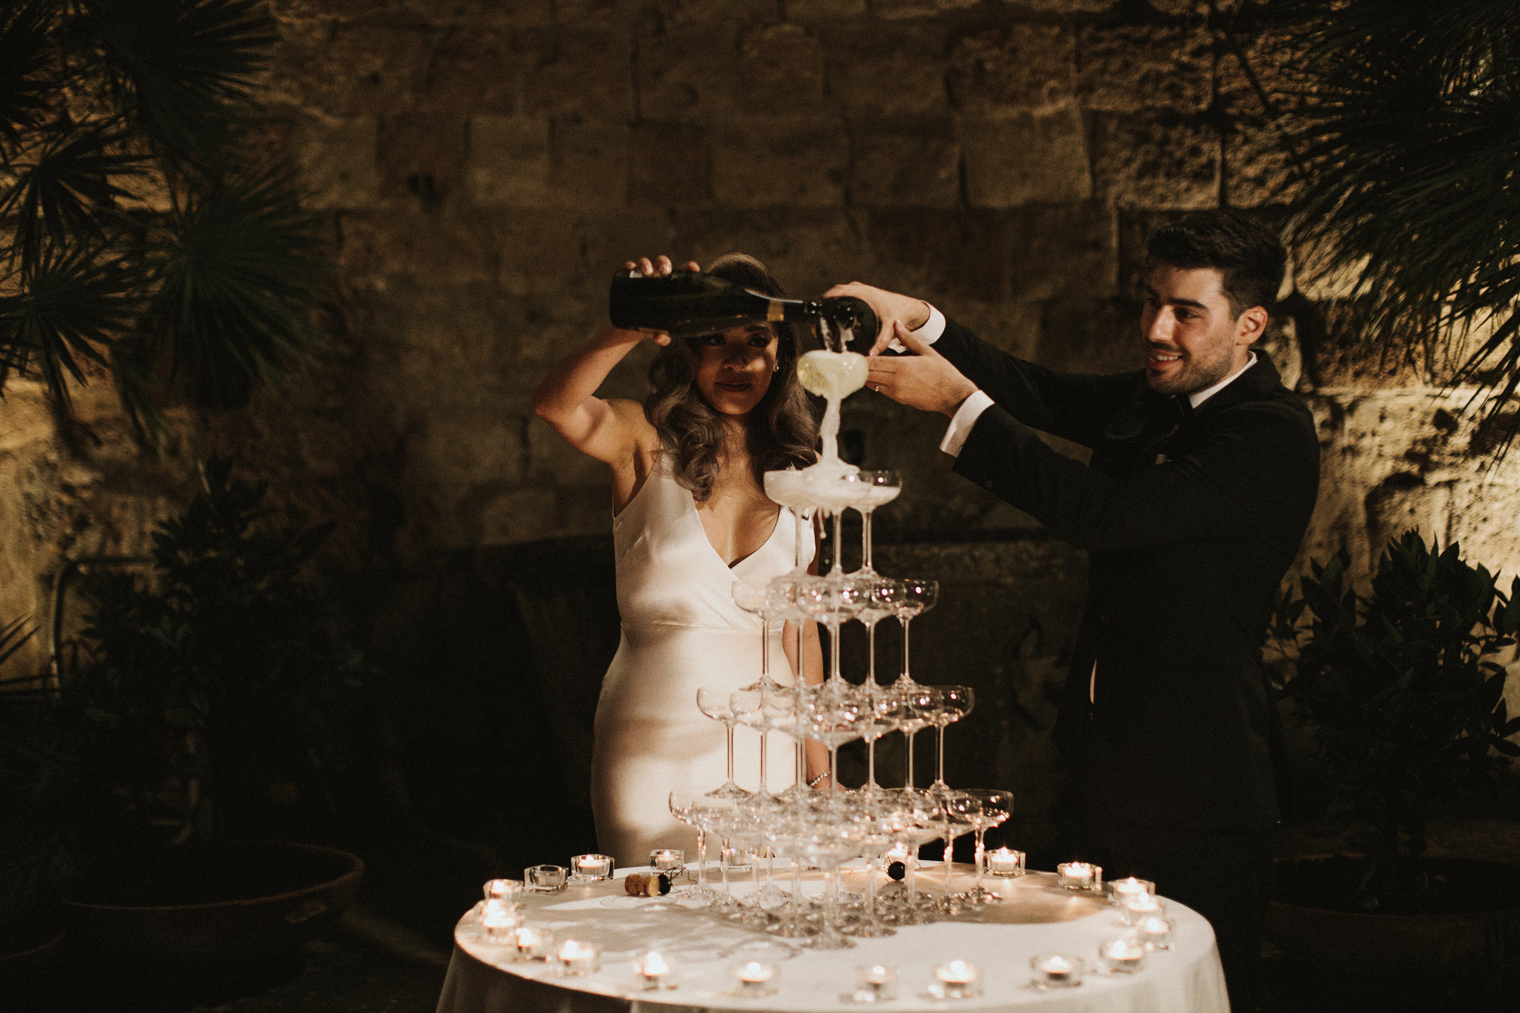 Prosecco Tower during wedding reception